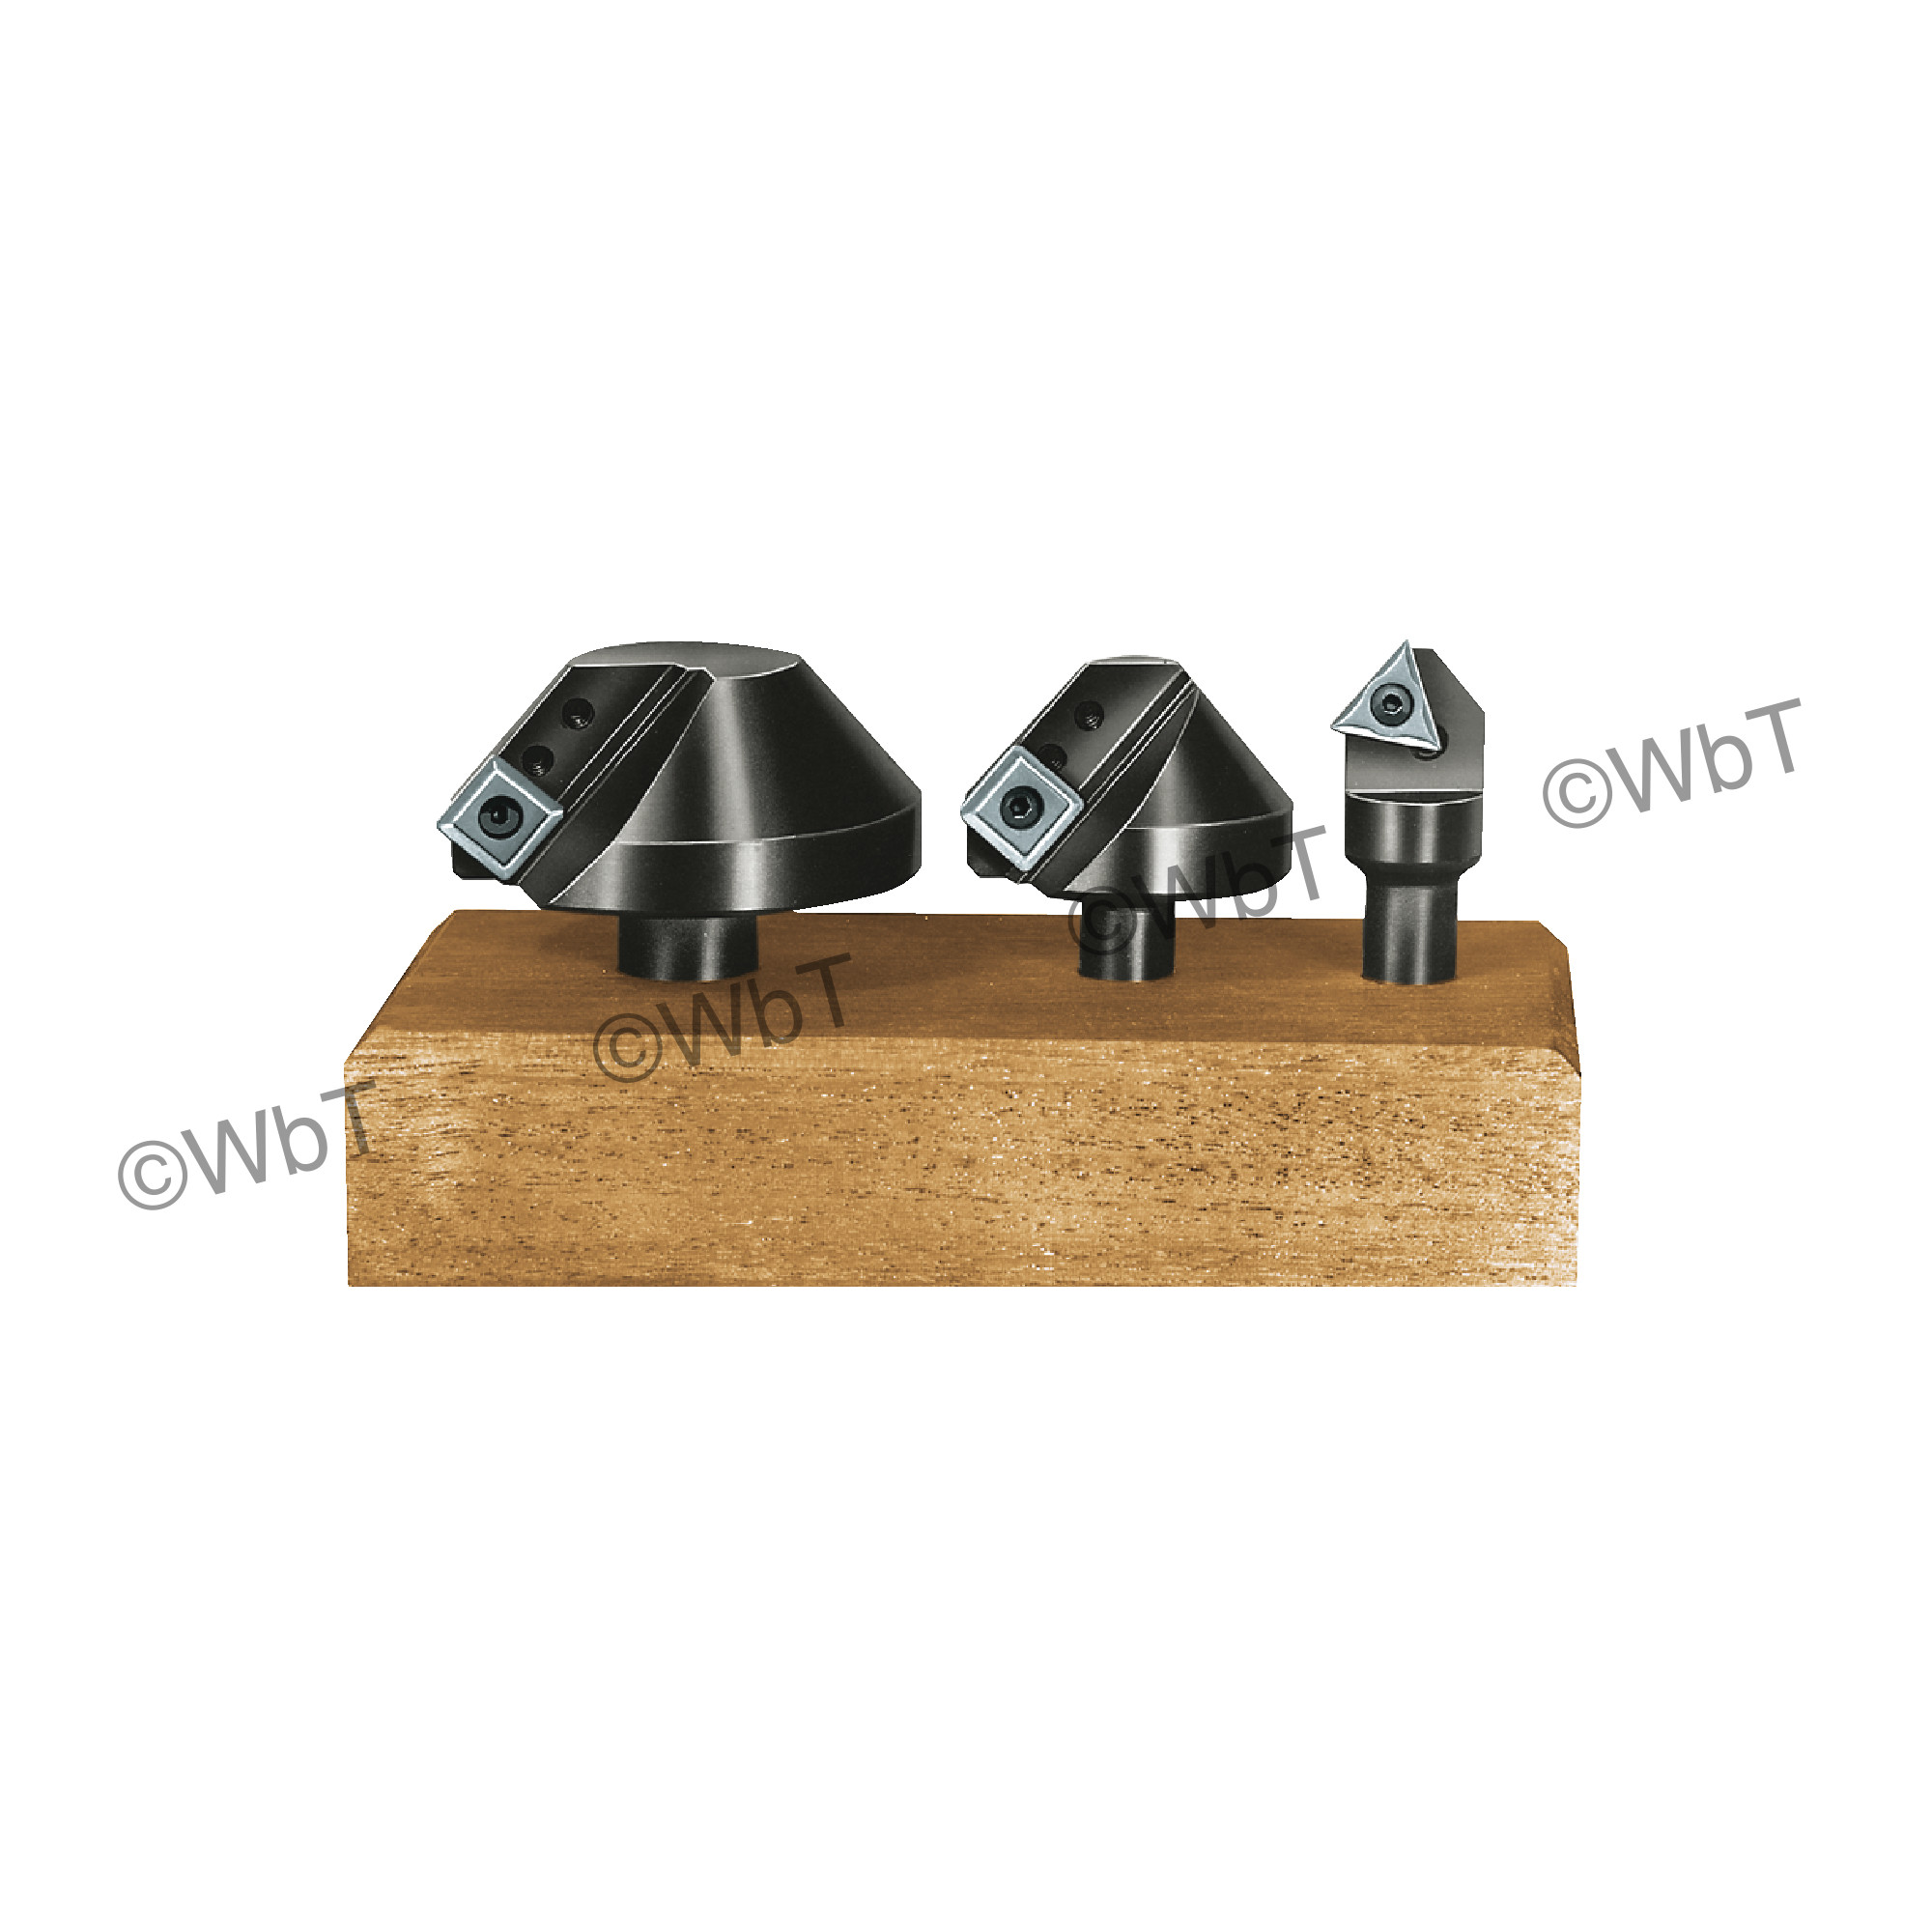 APT - CCS60 - 60° 3 Piece Countersink Set / Comes With TPGH321 C6 & SPGH433 C6 Uncoated Inserts loaded